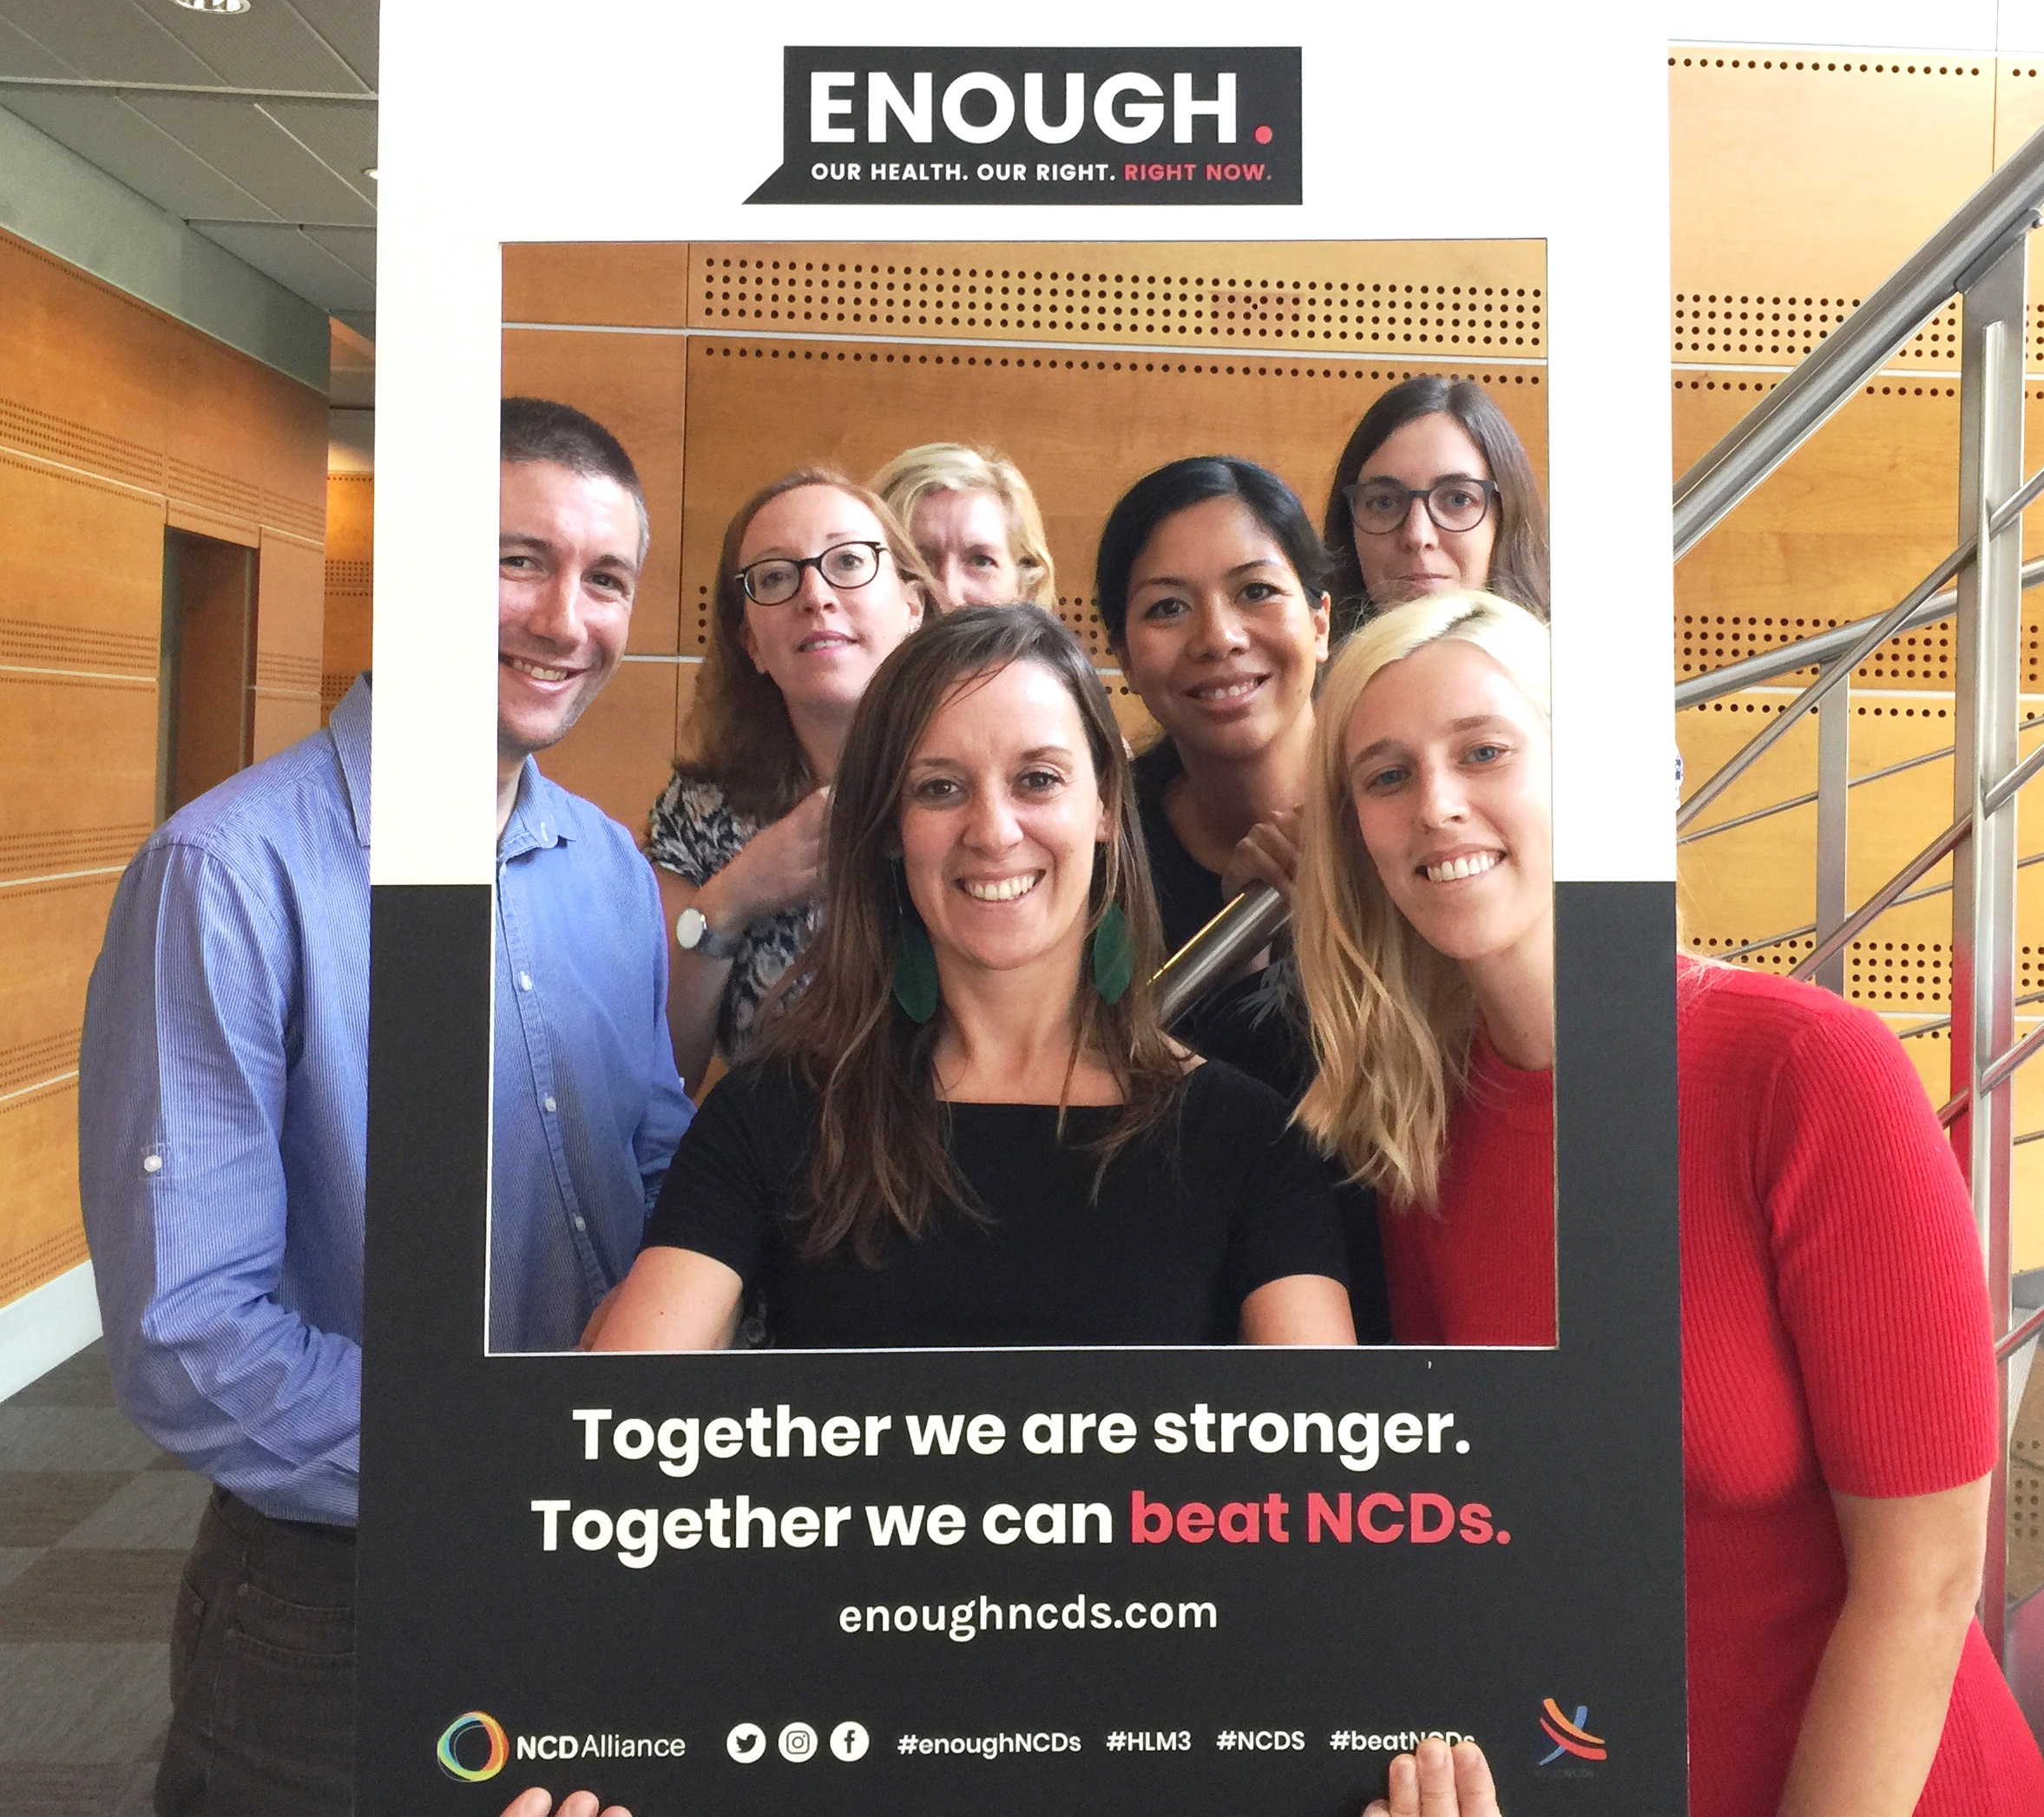 Staff from Union for International Cancer Control (UICC) appear in a giant frame, with branding of the ENOUGH NCDs campaign.